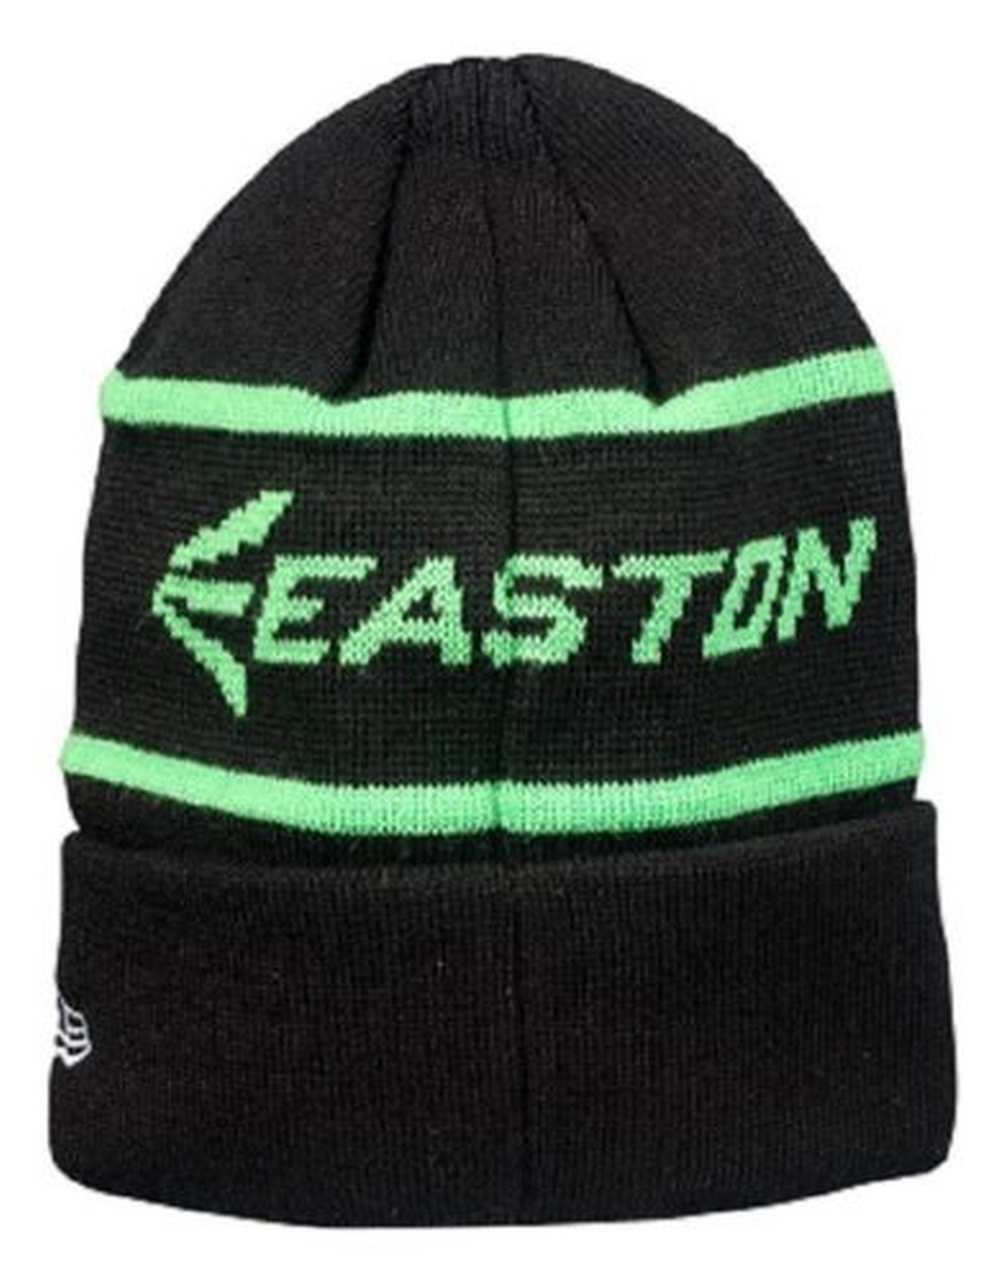 Easton Men's M7 Knit Beanie Baseball/Softball One One One Size A167909 2a61a3